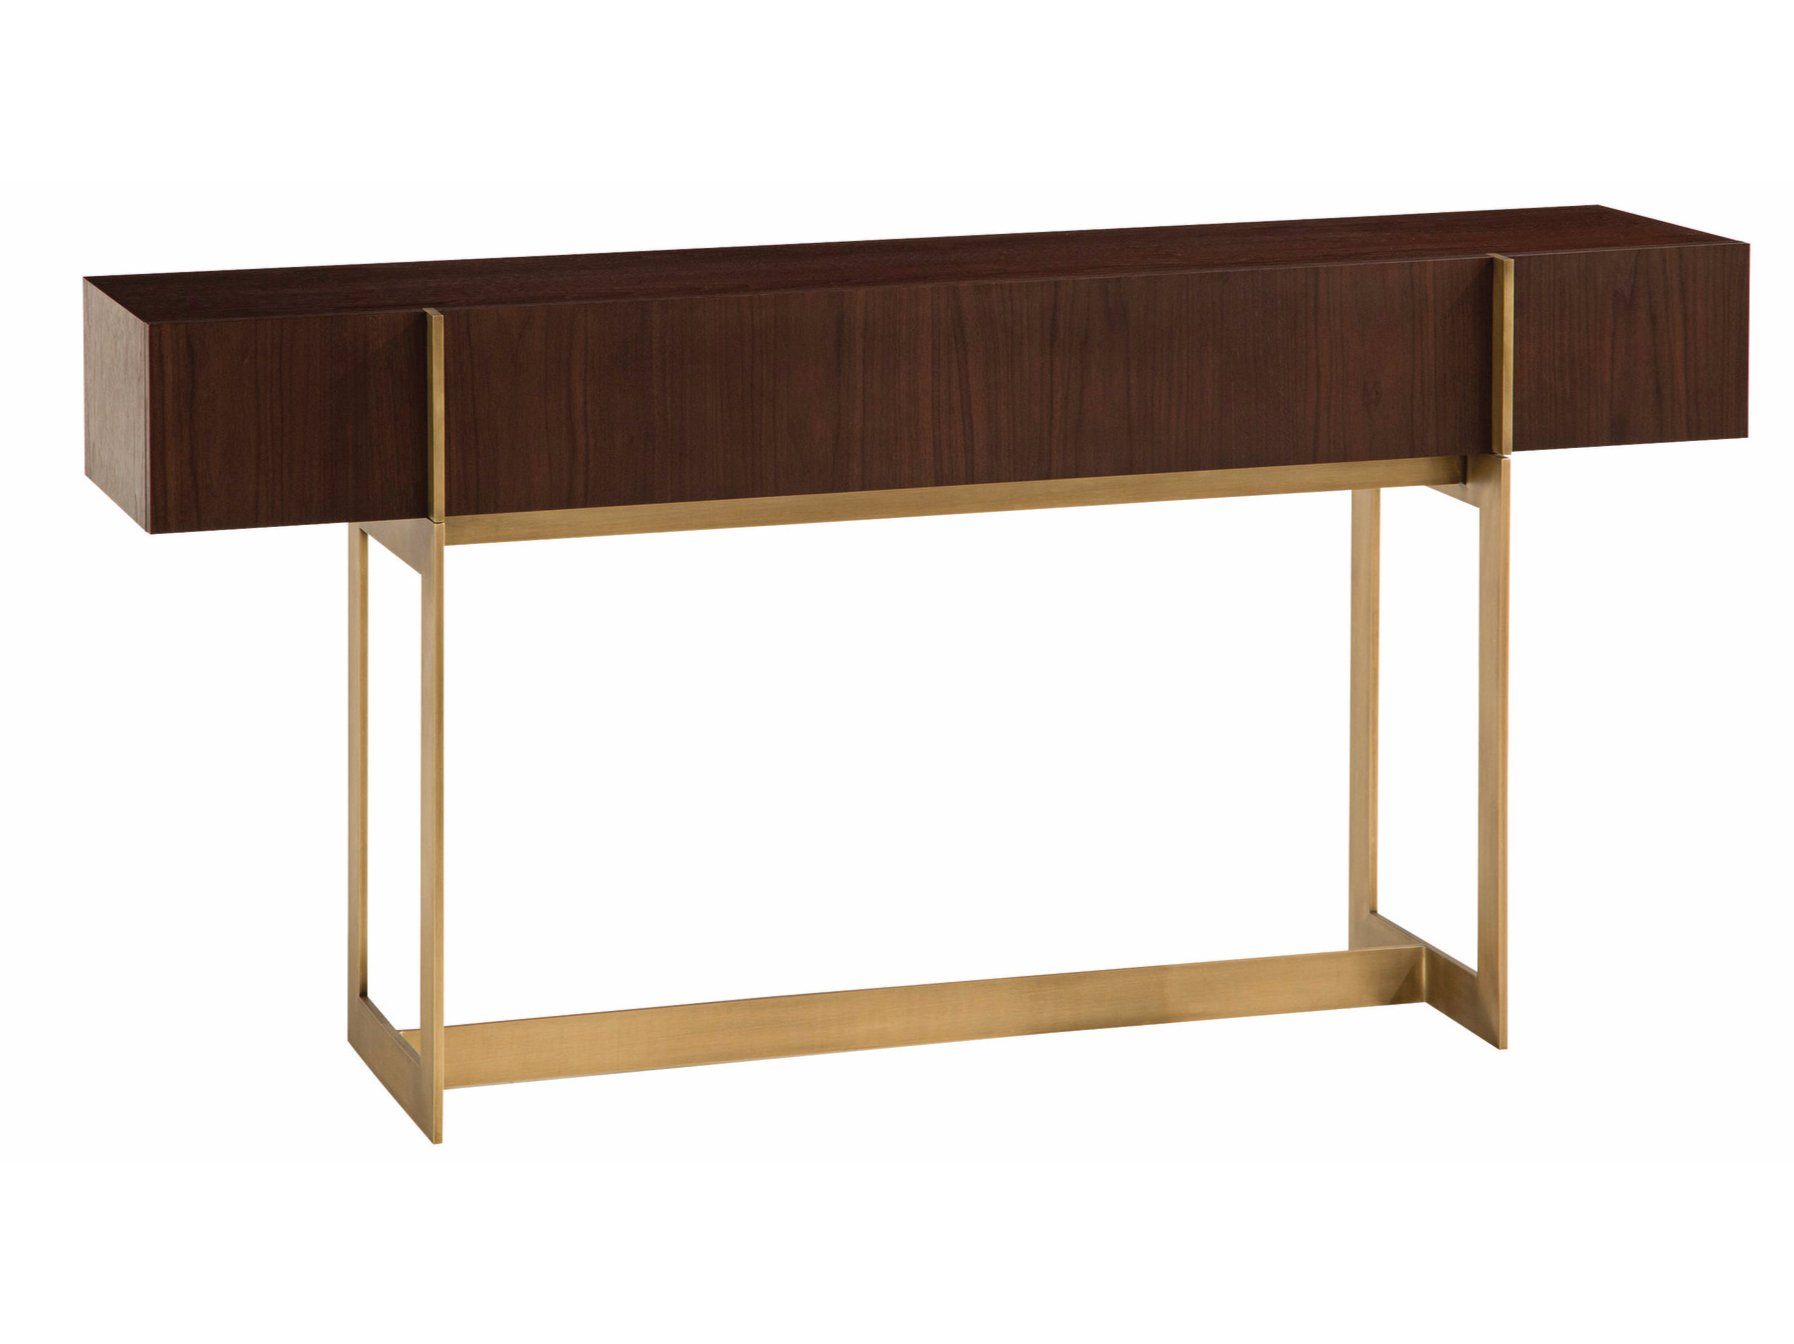 console-table-roche-bobois-263115-relc74d8815 Unique De Table A Manger Marbre